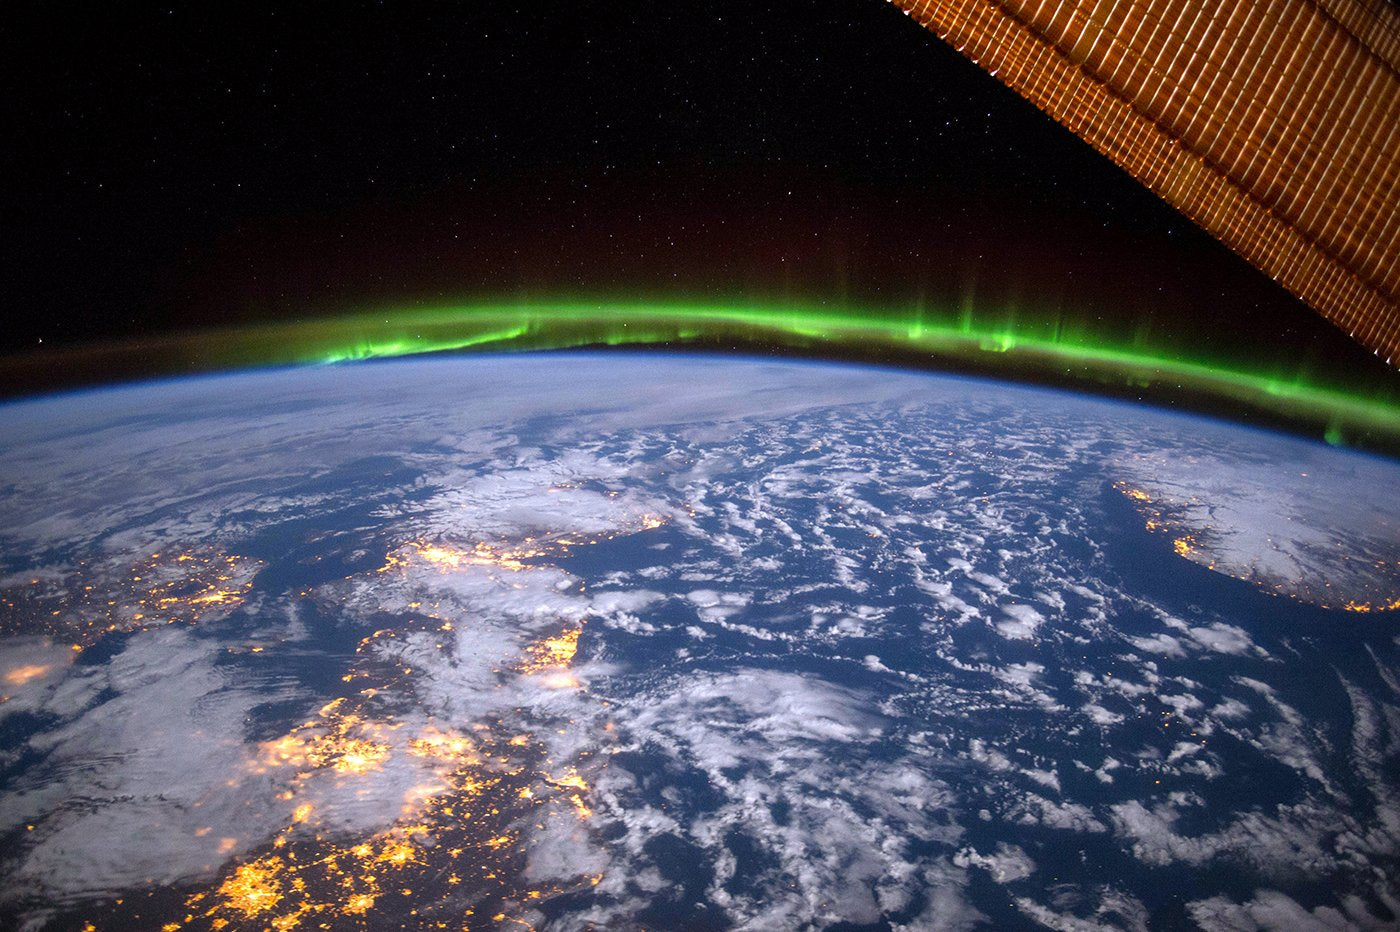 The Aurora over the UK and Ireland. Photo: Terry Virts